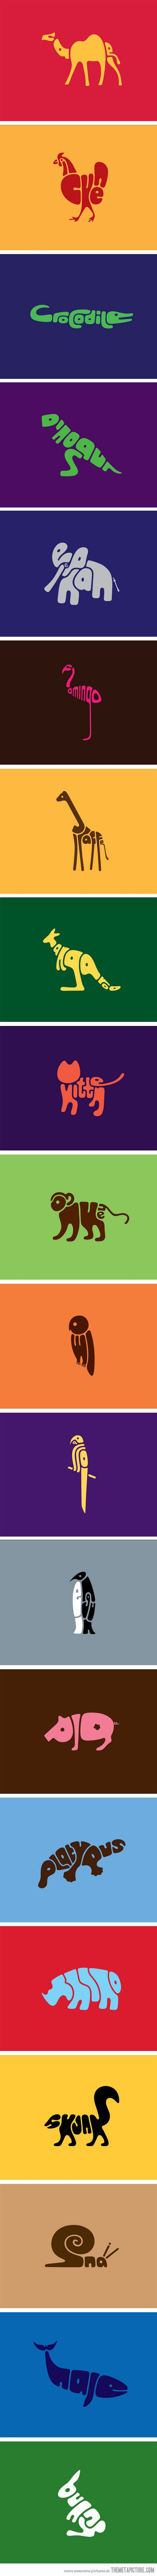 Word Animals /// An interesting way to think of symbols and words